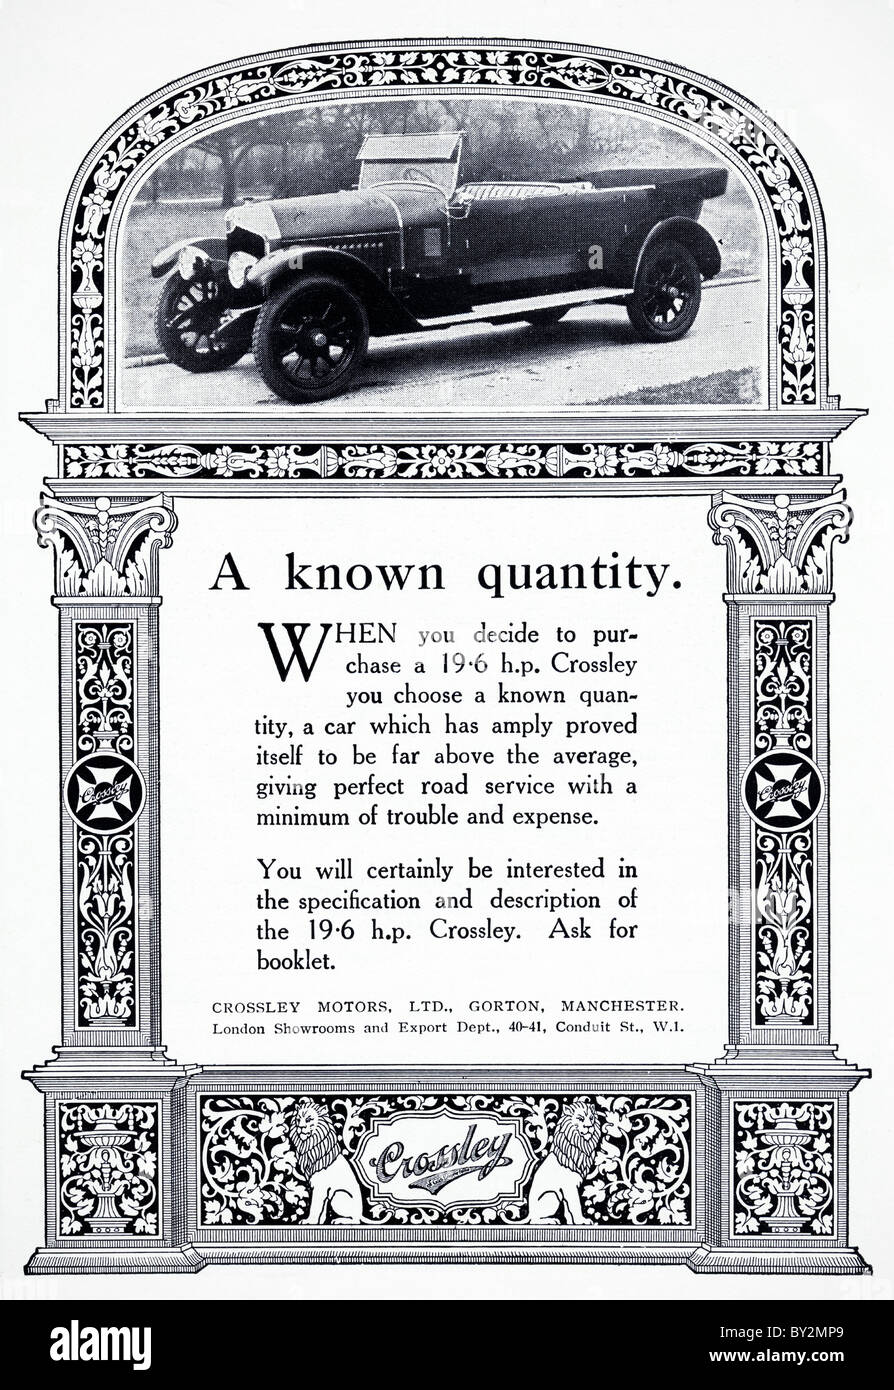 Original advert for Crossley Motors Ltd 19.6 h.p. car manufactued from 1921 to 1926 in Manchester England UK - Stock Image